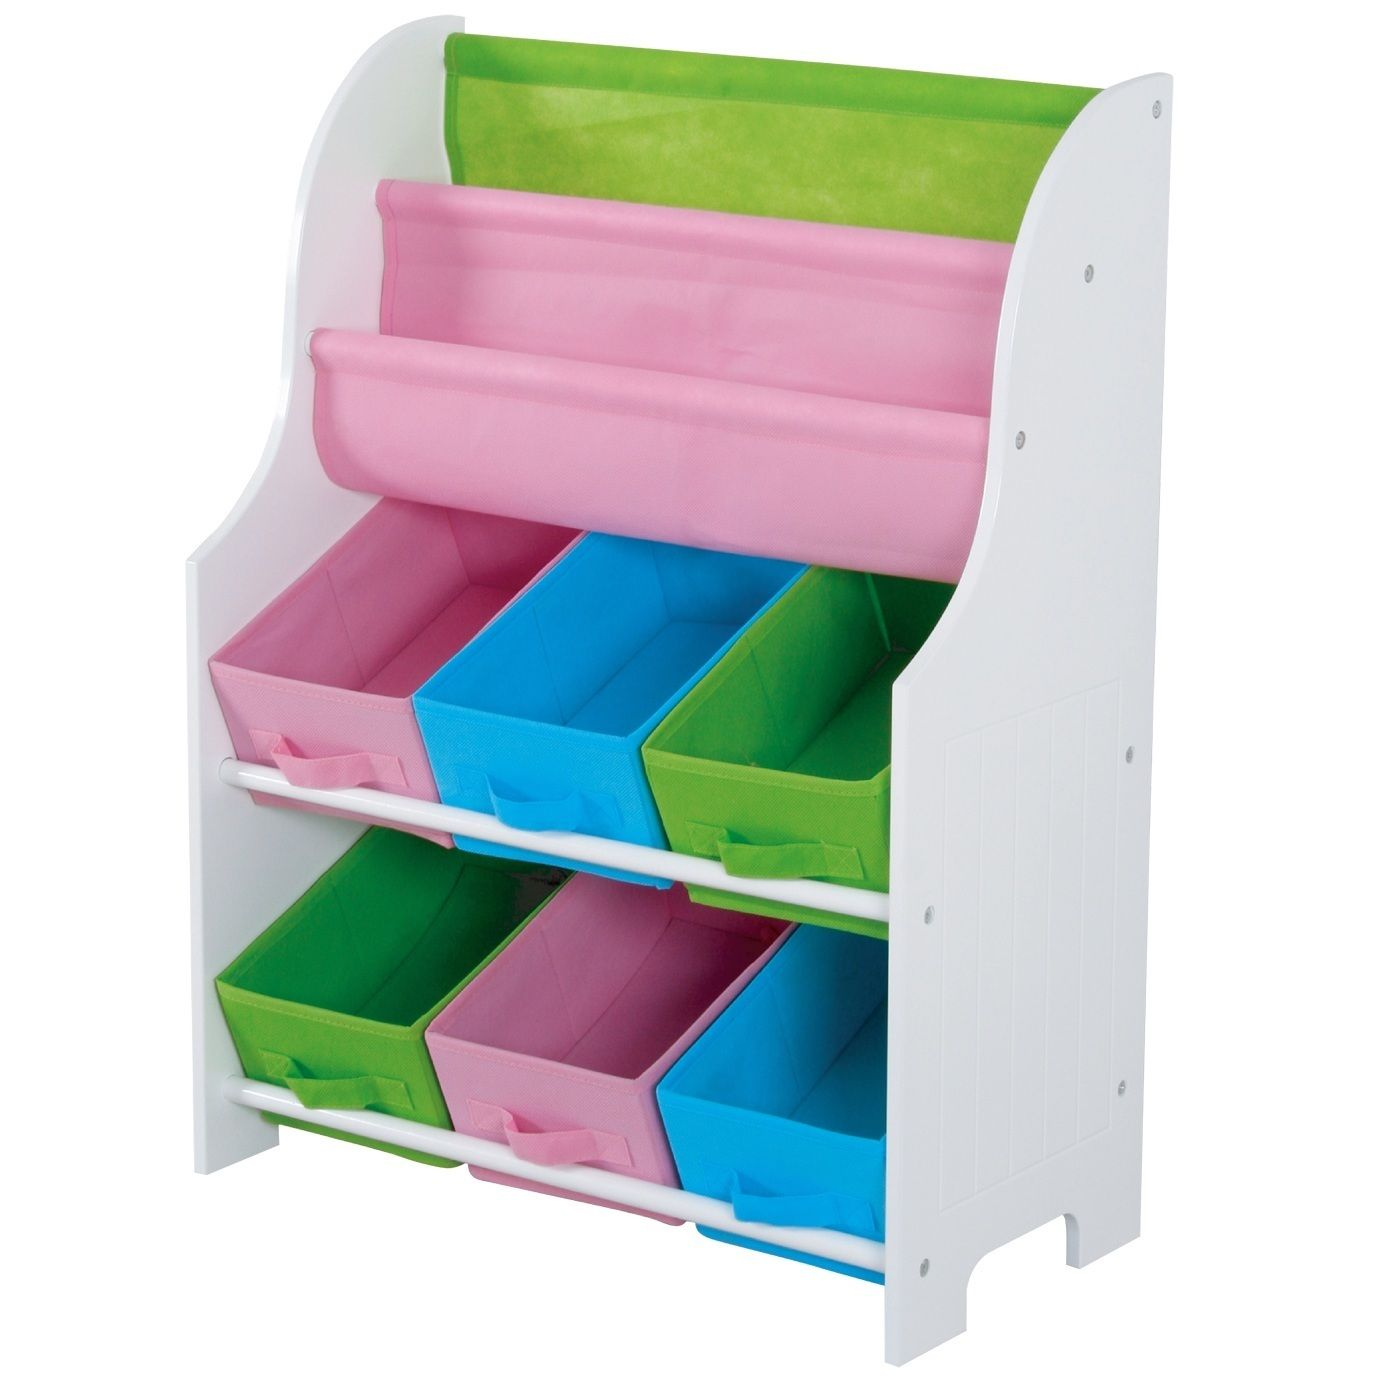 Kids Storage Book Holder And Shelf Provides Decorative E For Books Toys Other Belongings Constructed From A White Fiberboard Finish With